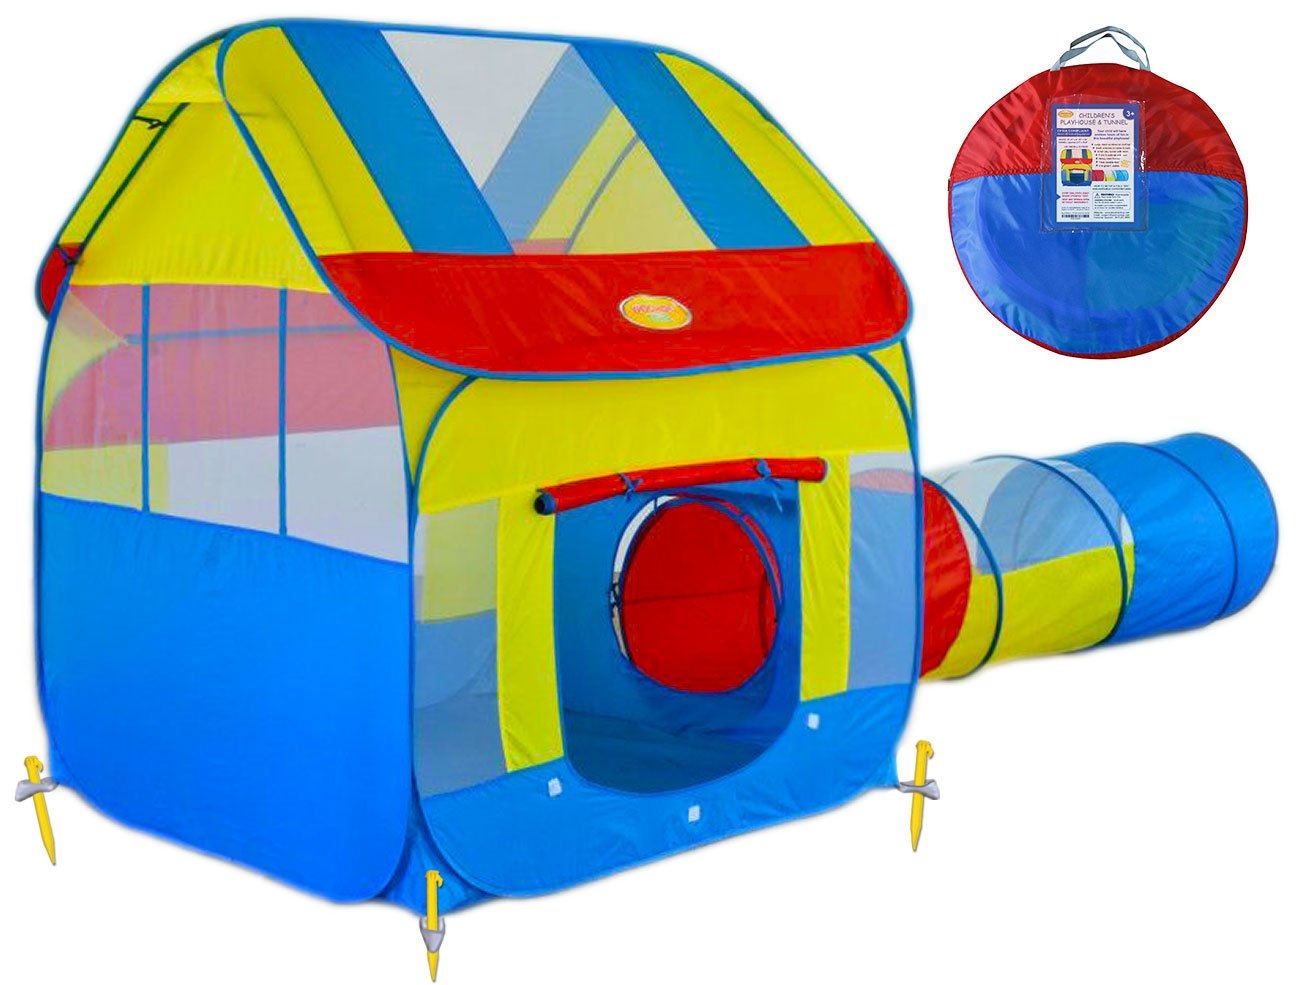 Amazon.com Big Children Play Tent with Tunnel - Pop-Up into Playhouse Tent for Indoor/Outdoor with Stakes for Boys or Girls Good for Kids to Pretend Play ...  sc 1 st  Amazon.com & Amazon.com: Big Children Play Tent with Tunnel - Pop-Up into ...